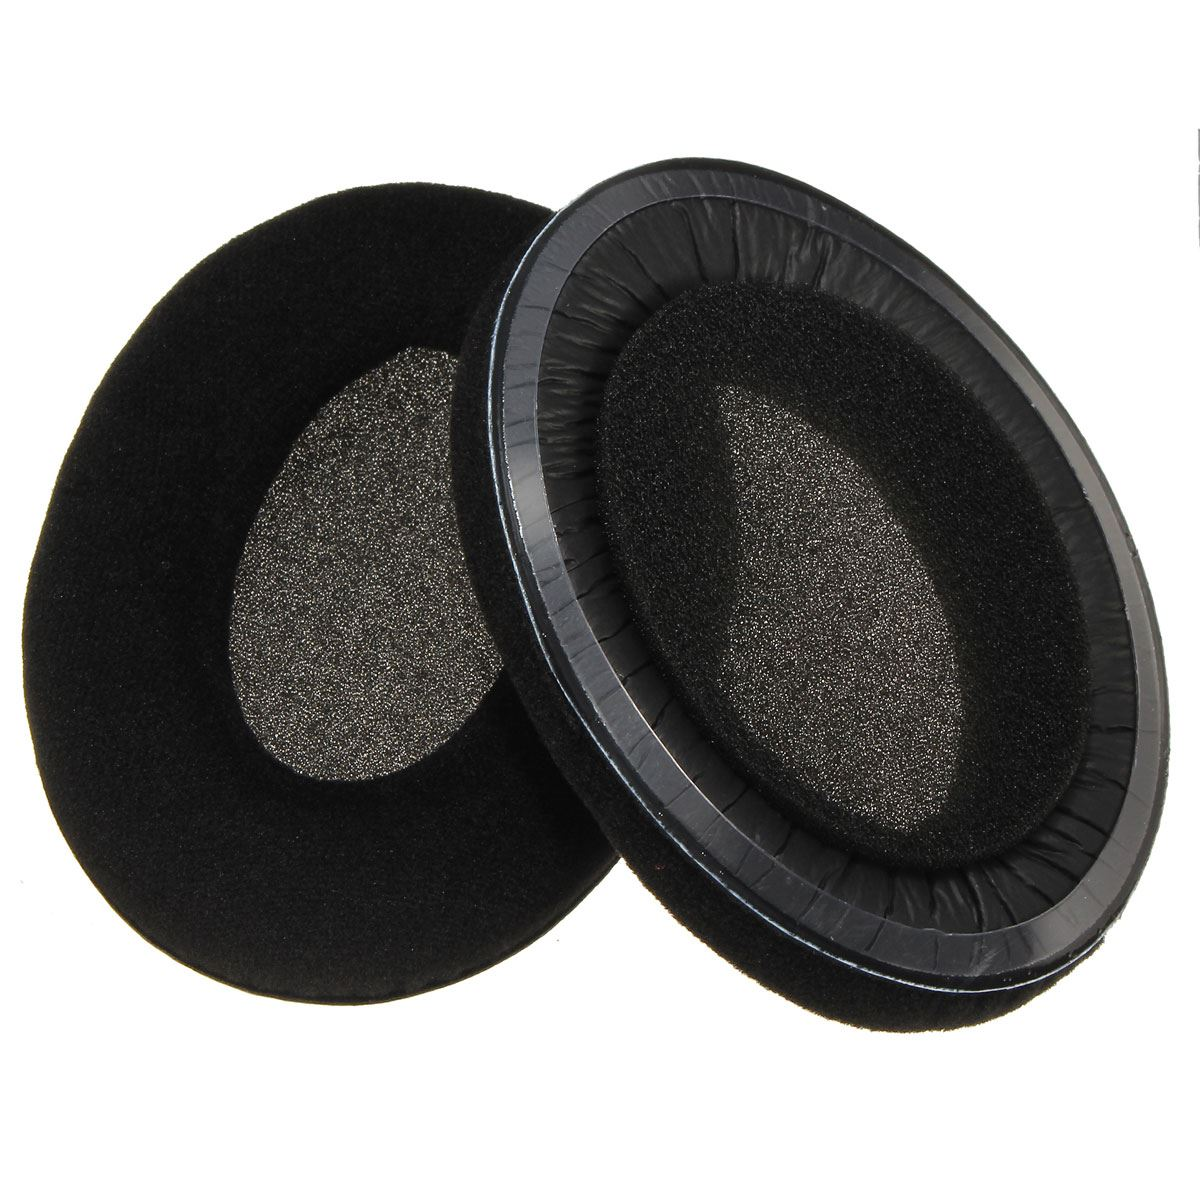 Wholesale Comfort Replacement Cushion Pads Earpad Cup Care Earphones Standard for Sennheiser HD515 HD555 HD595 HD518 Headphones(China (Mainland))